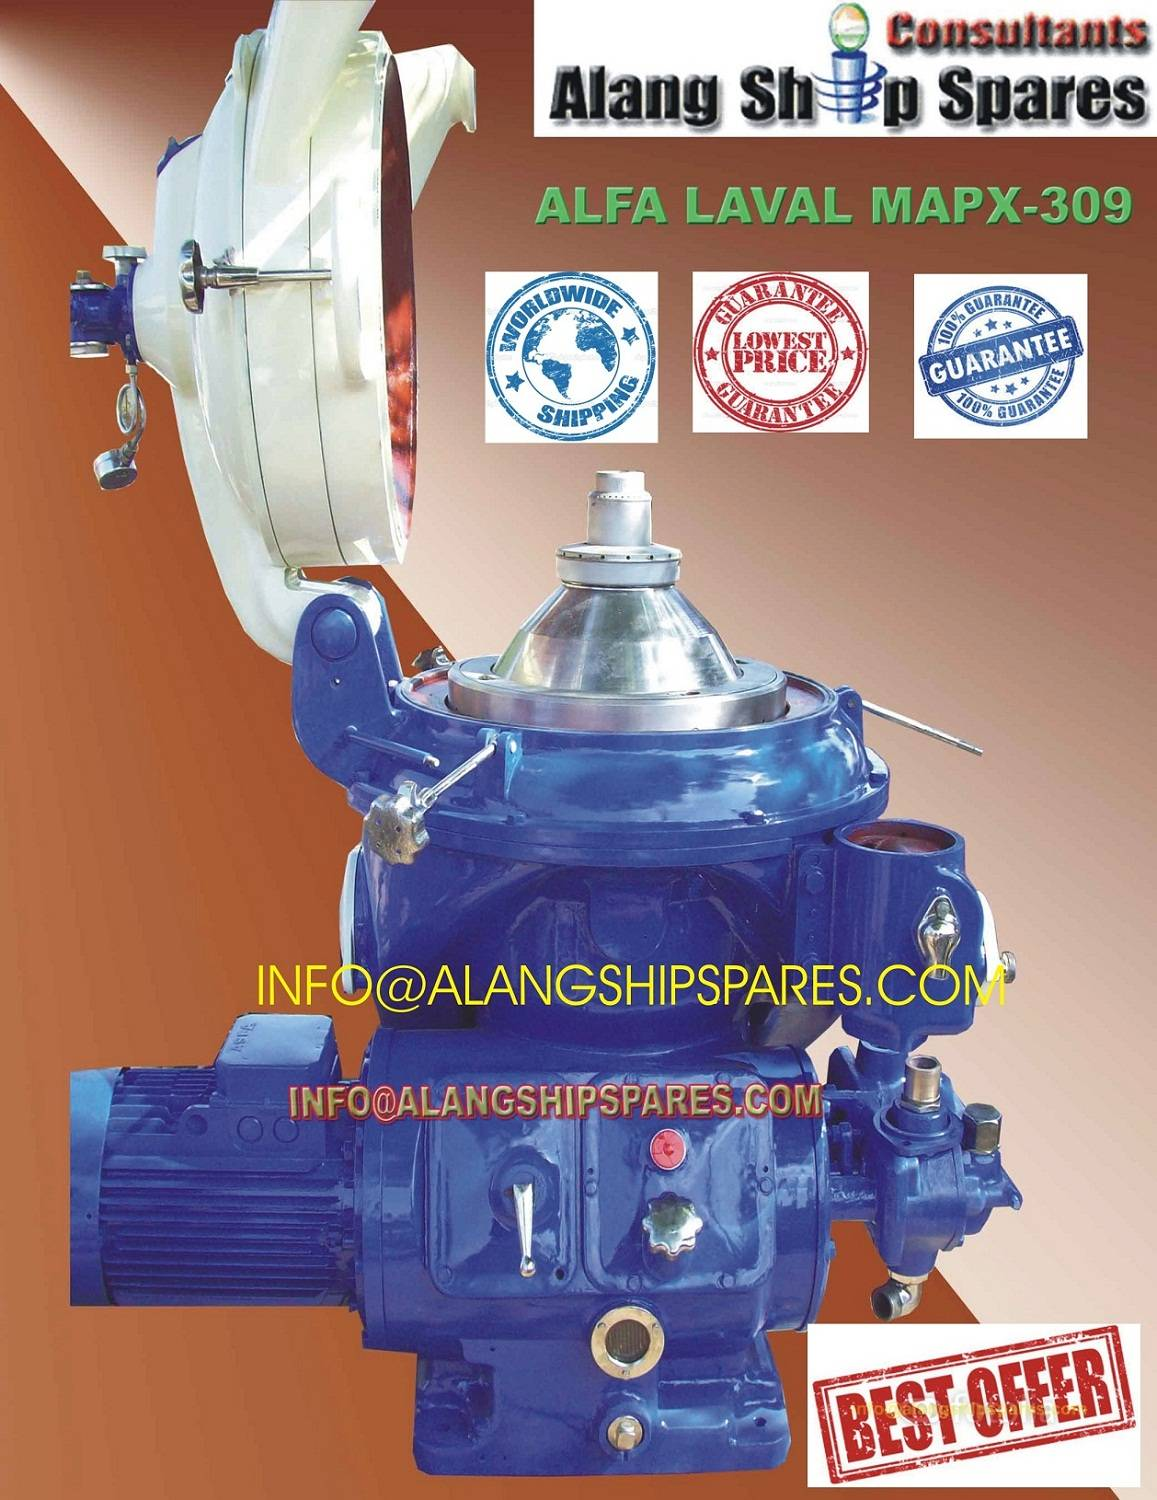 Reconditioned Alfa Laval oil purifier, industrial centrifuge, MAPX-309 BGT